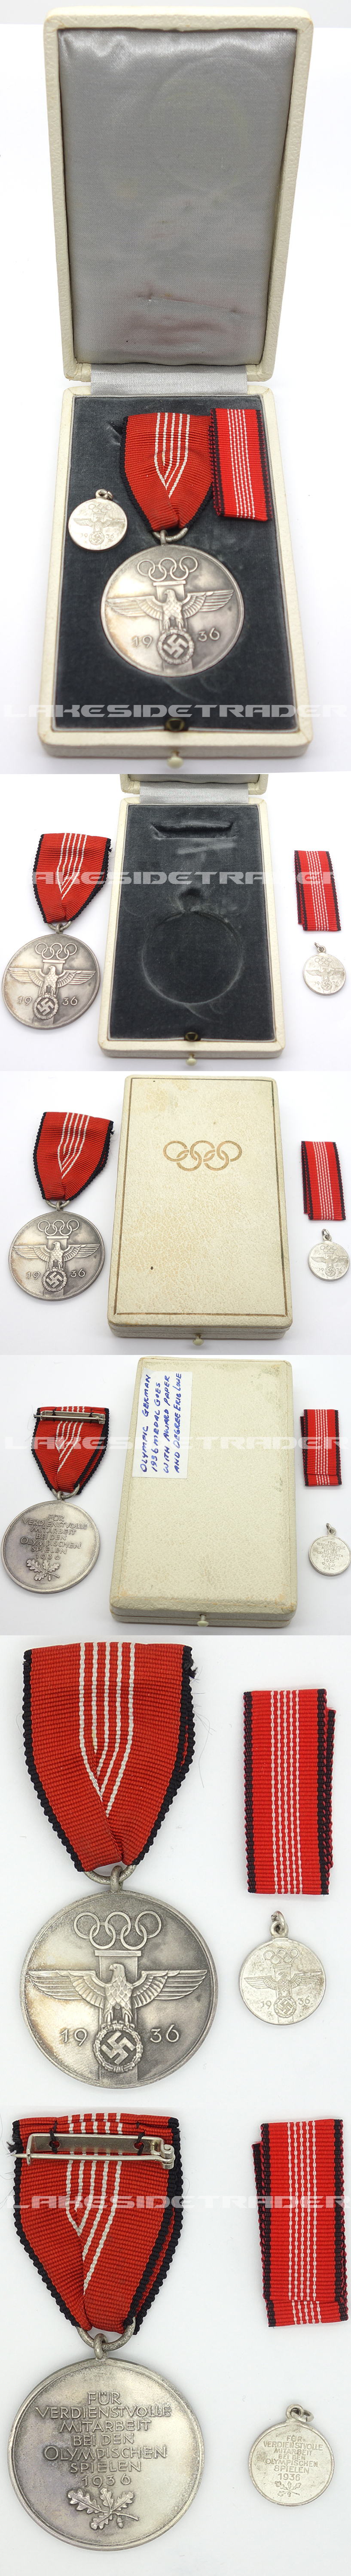 Olympic Medals and Document group